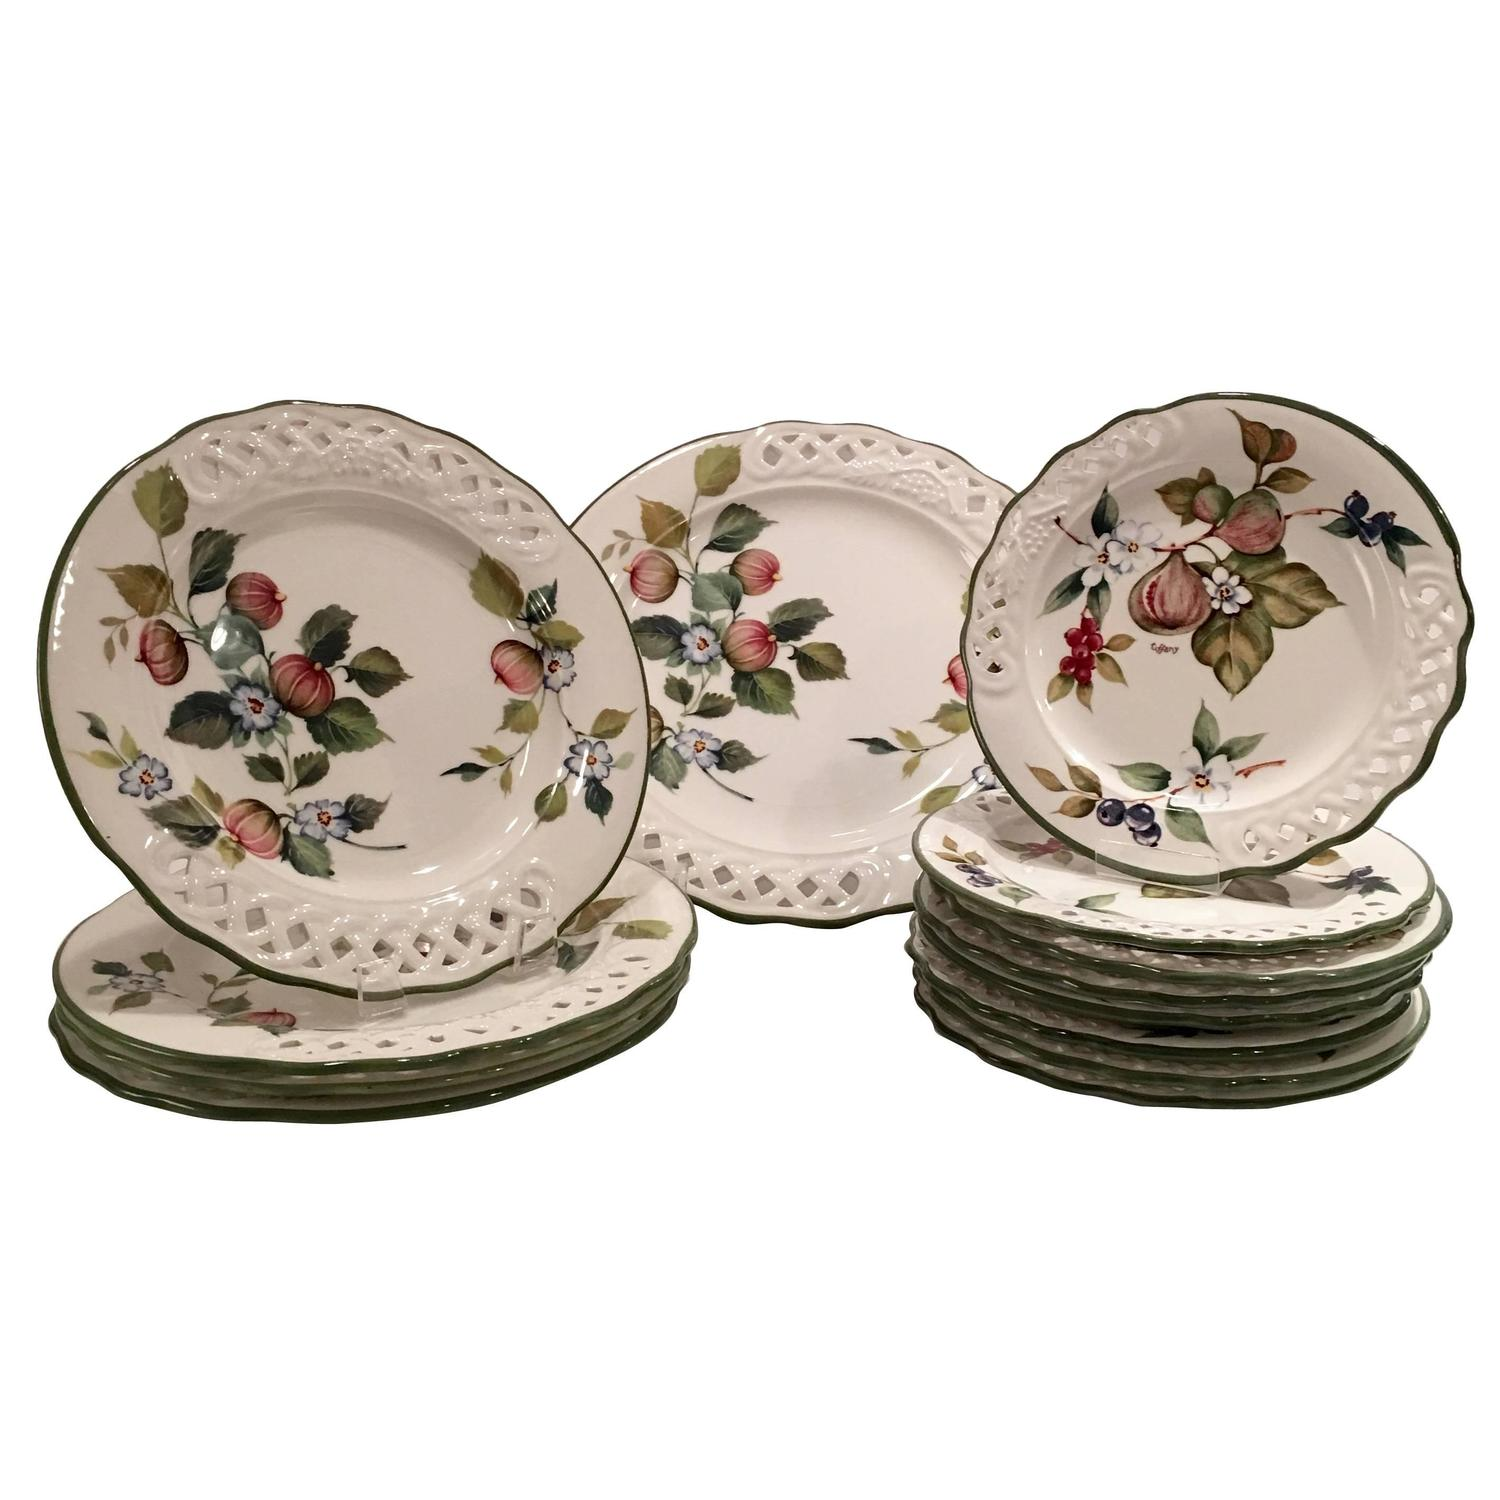 13 Piece Set Of Quot Tiffany Quot Dinnerware By Brunelli For Sale